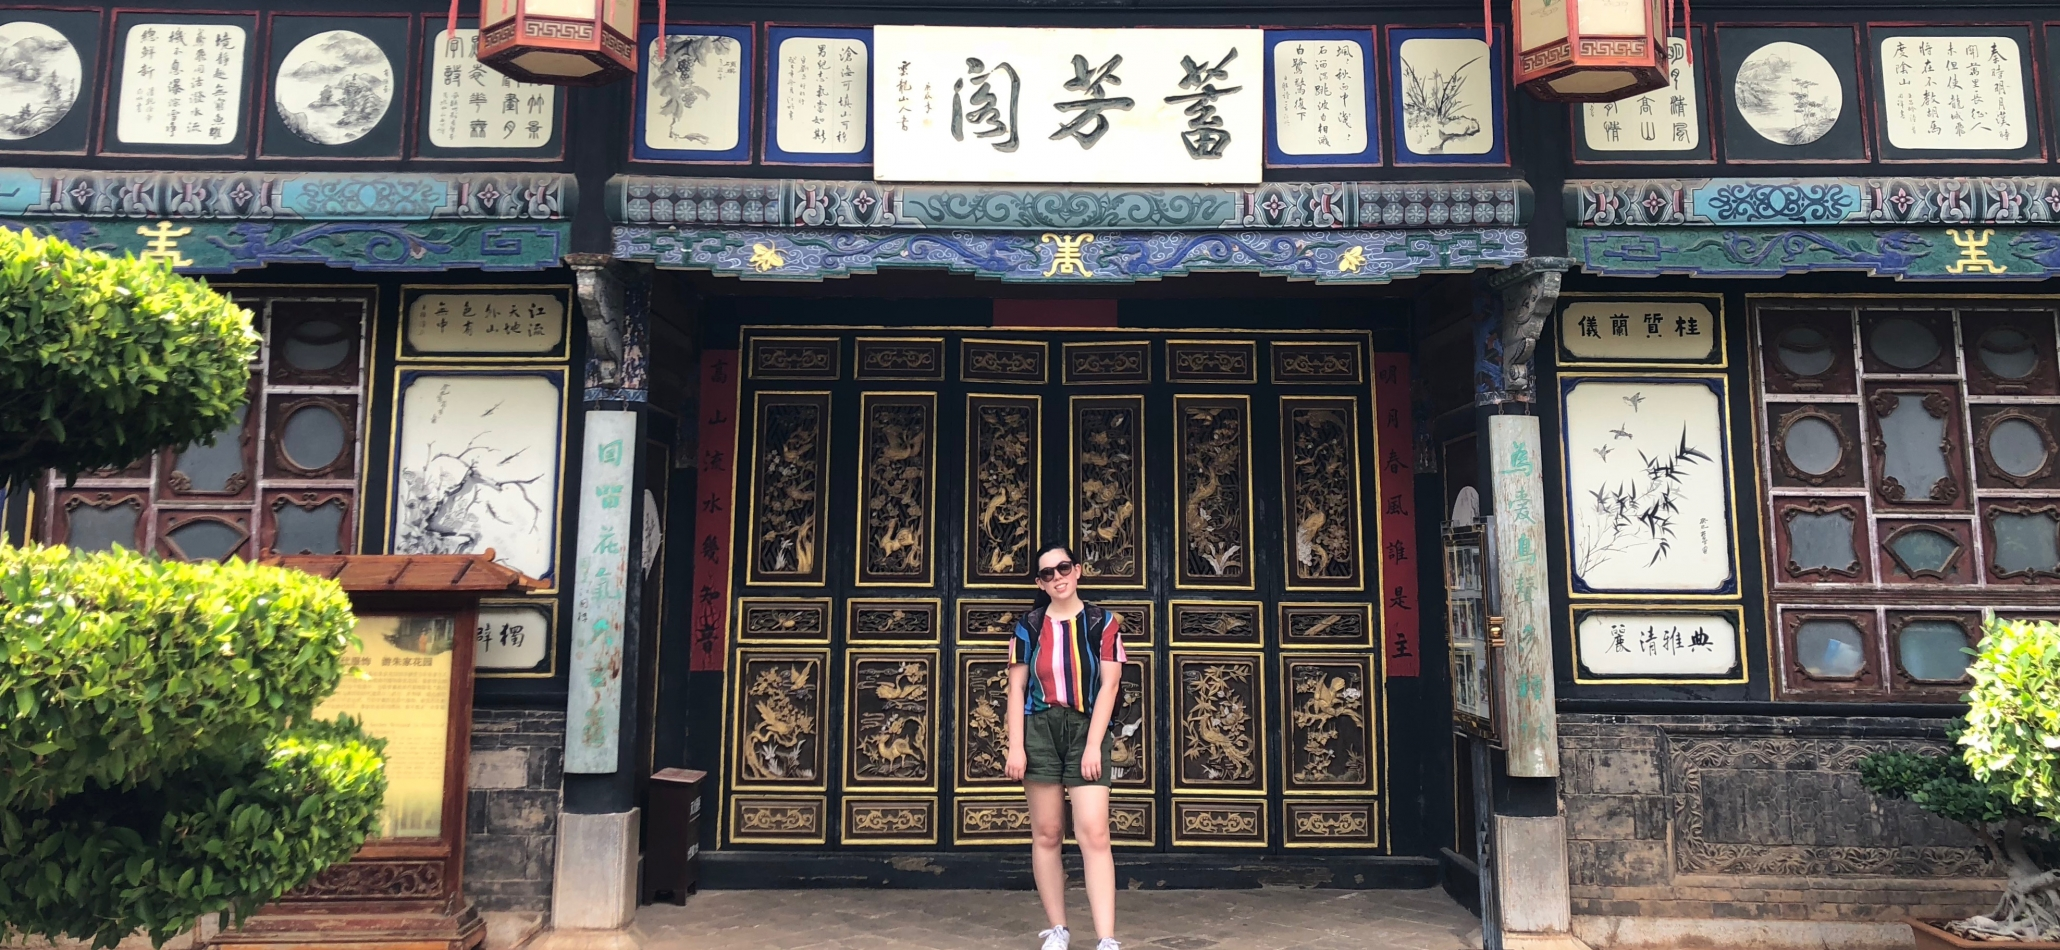 Peri Law outside of a building in China